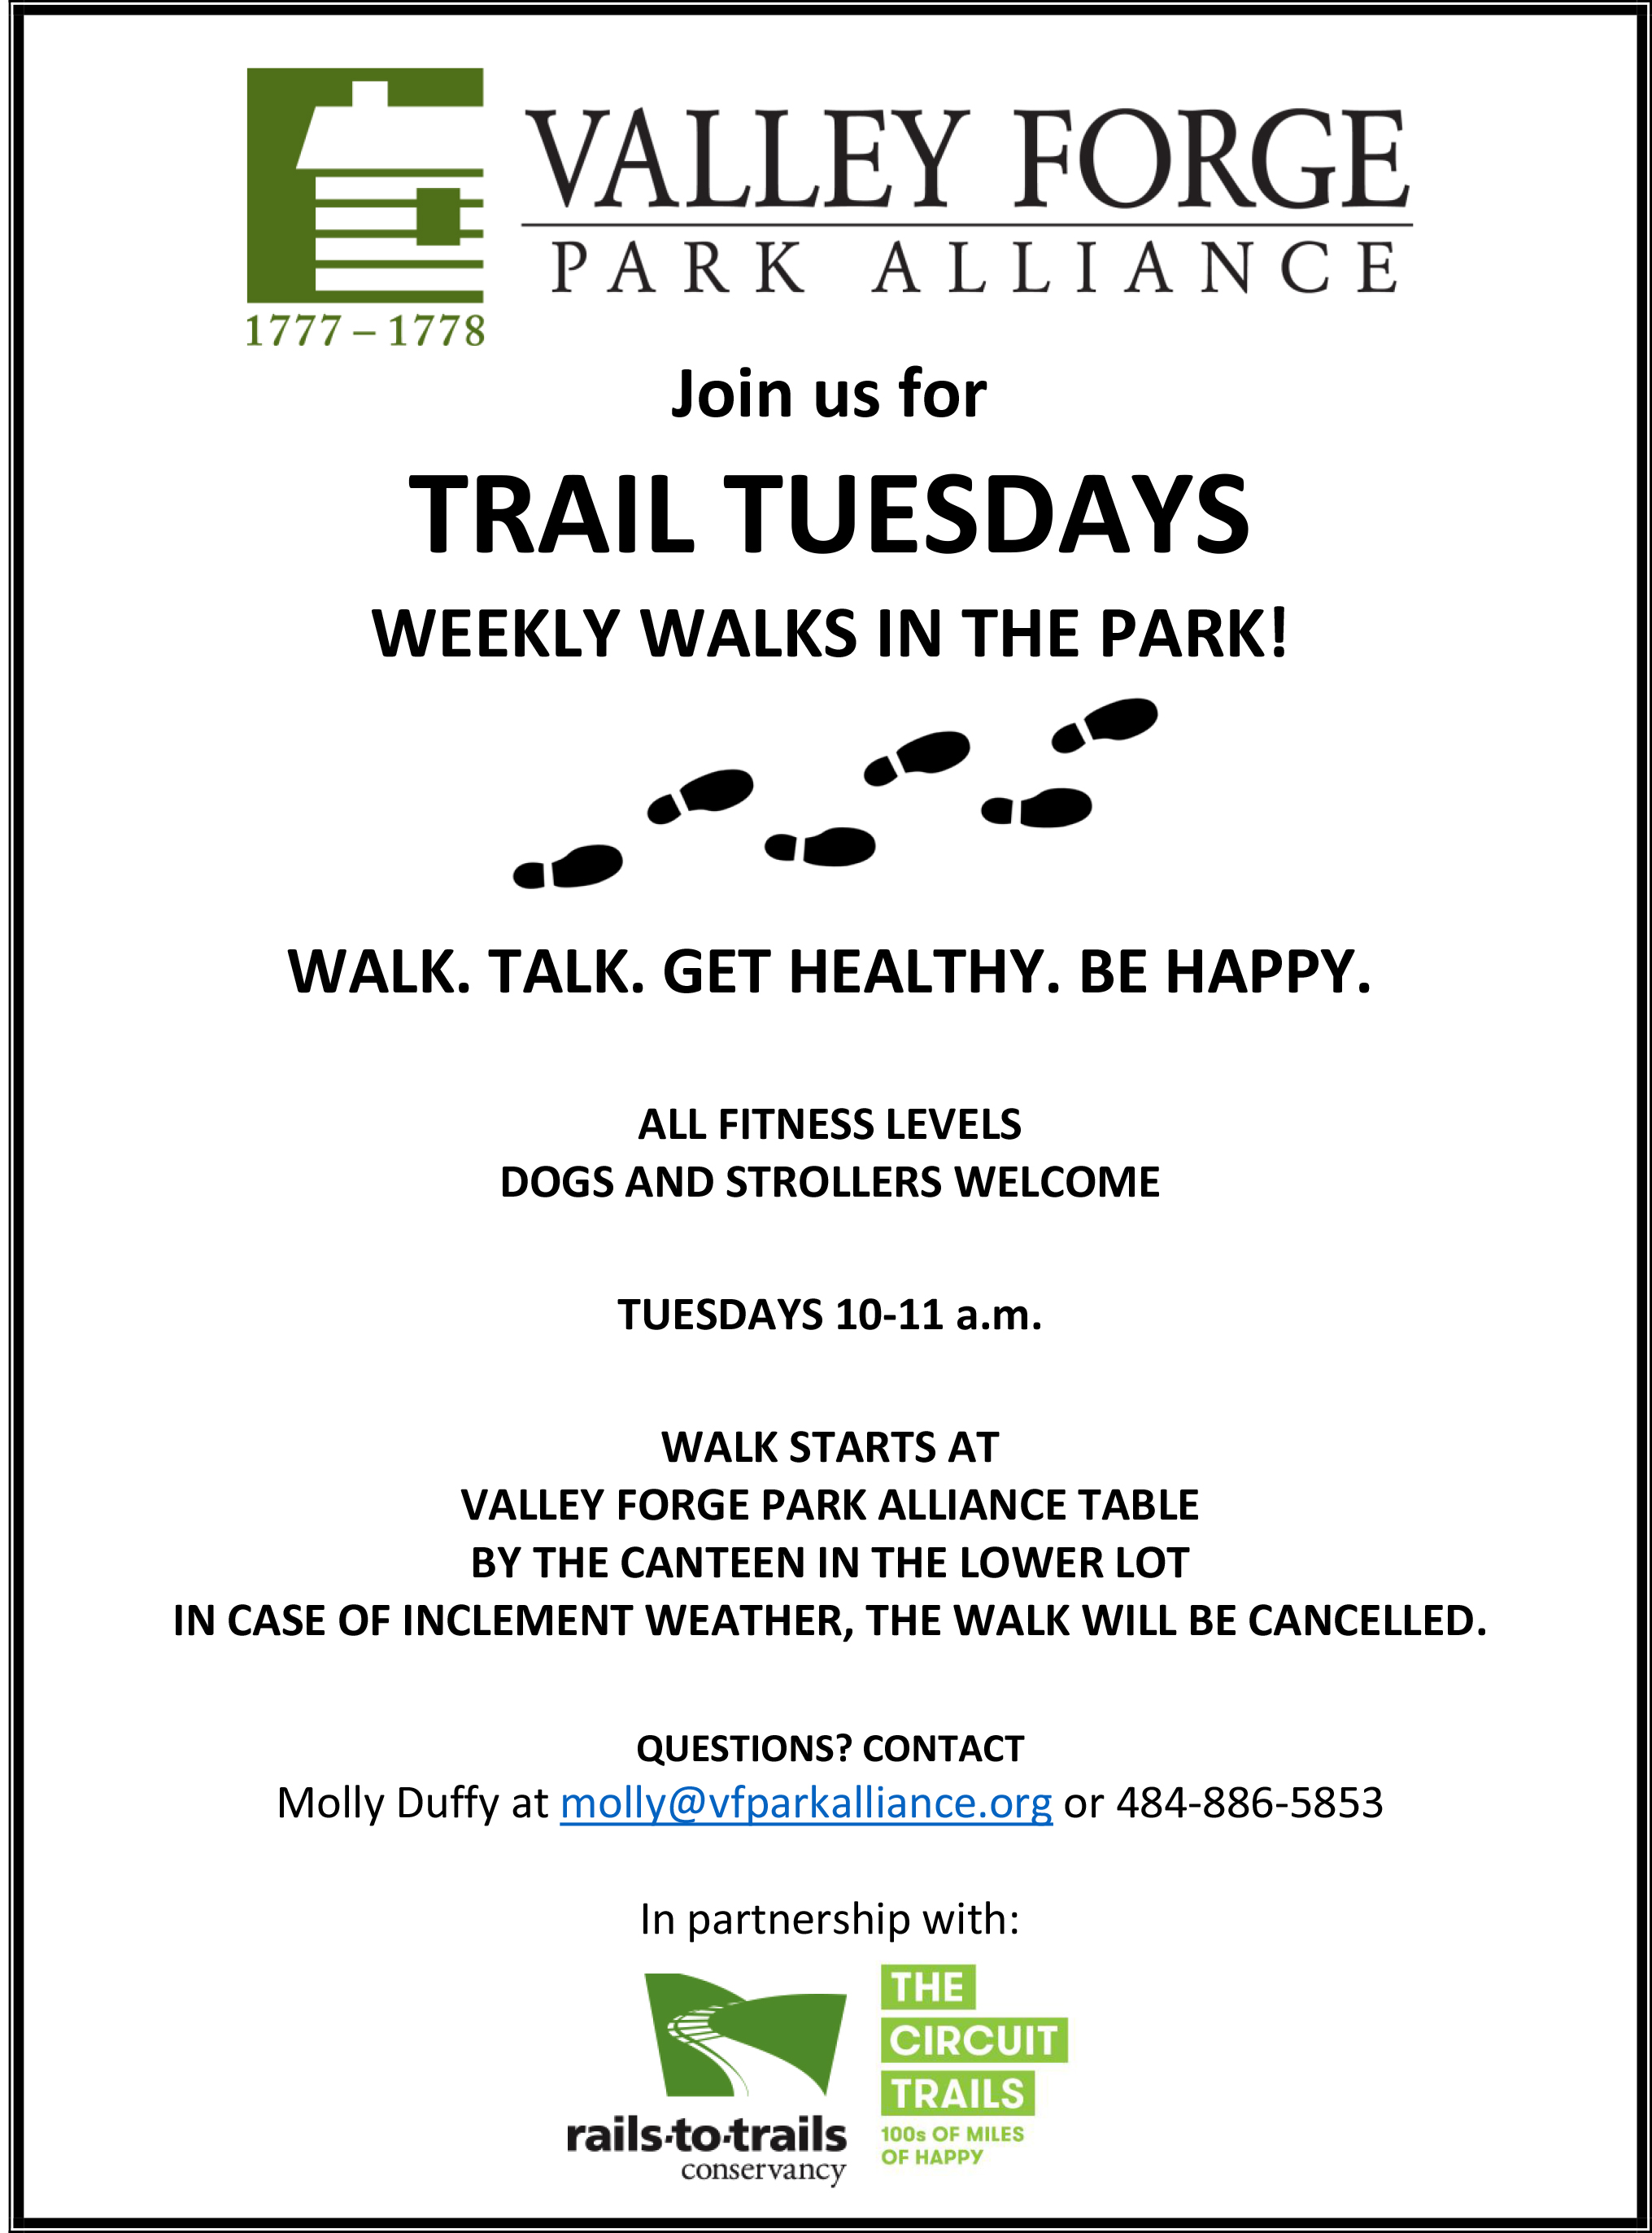 Flyer for Valley Forge Park Alliance Tuesday walks.